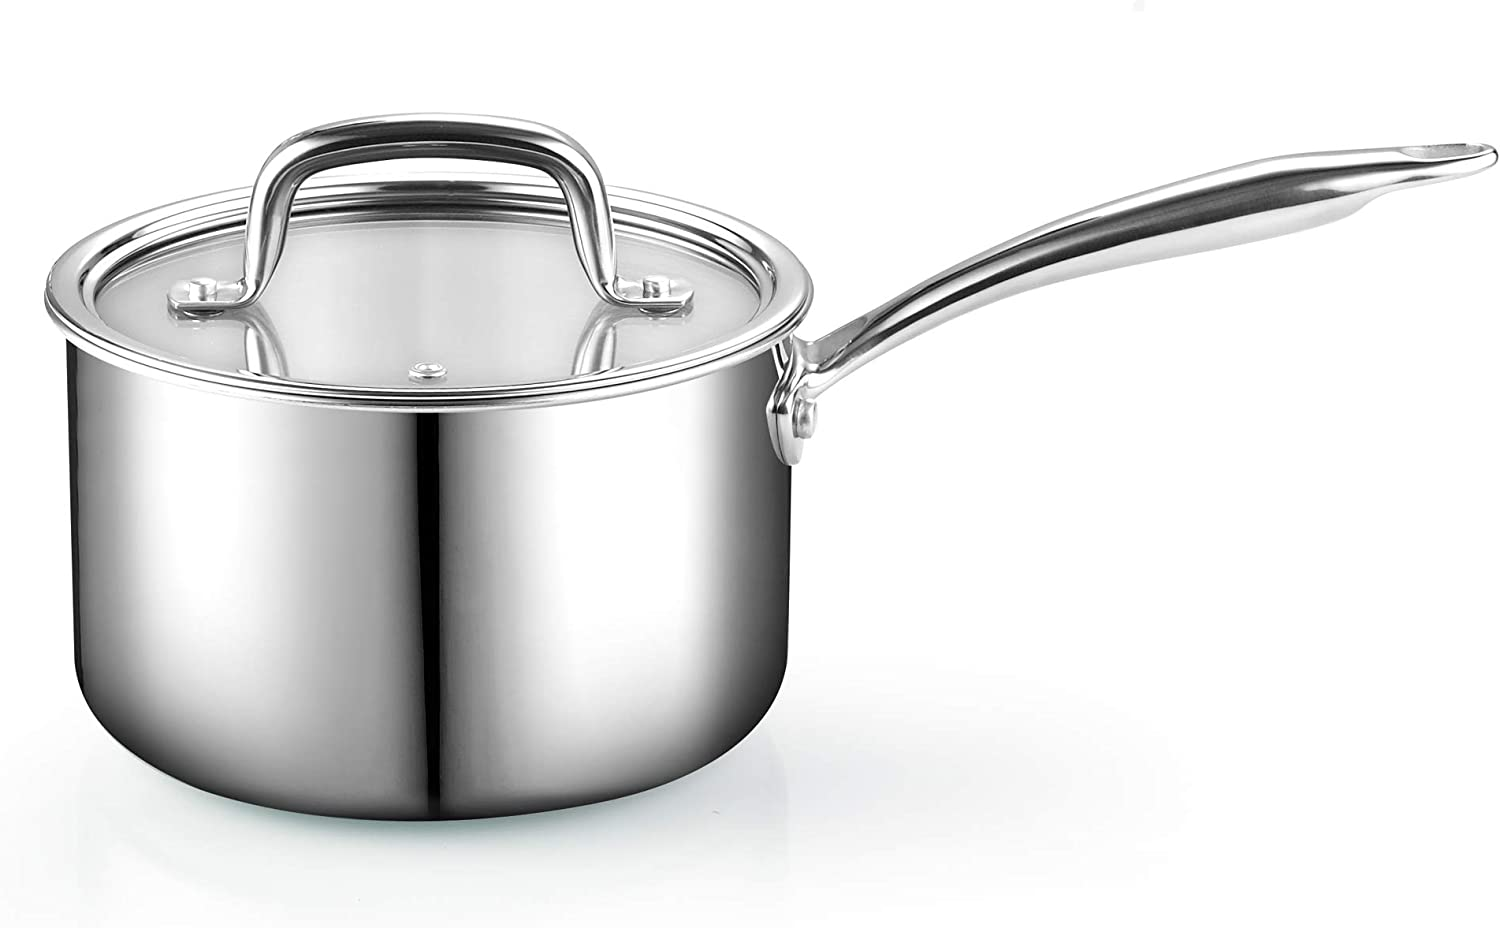 10-inch Silver Cook N Home 02682 Tri-Ply Clad Stainless Steel Skillet Saute Fry Pan